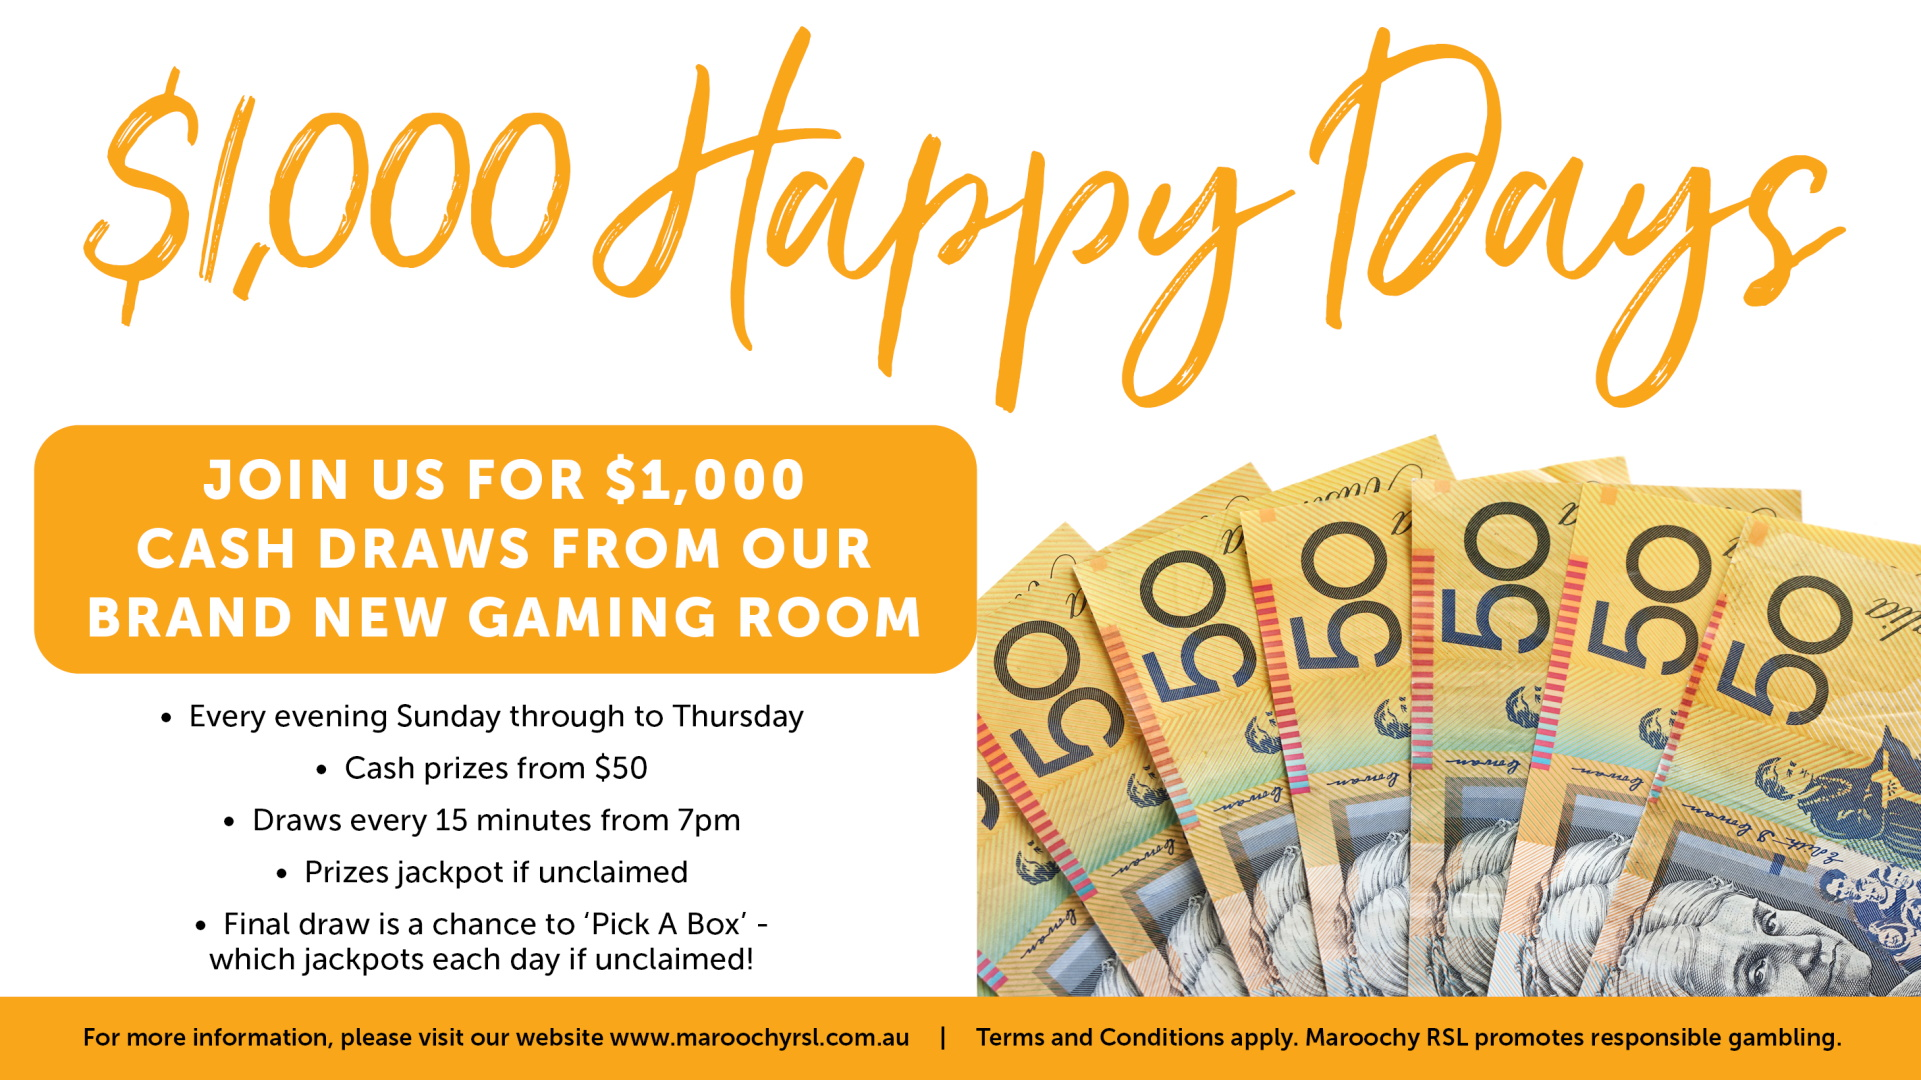 $1,000 Happy Days